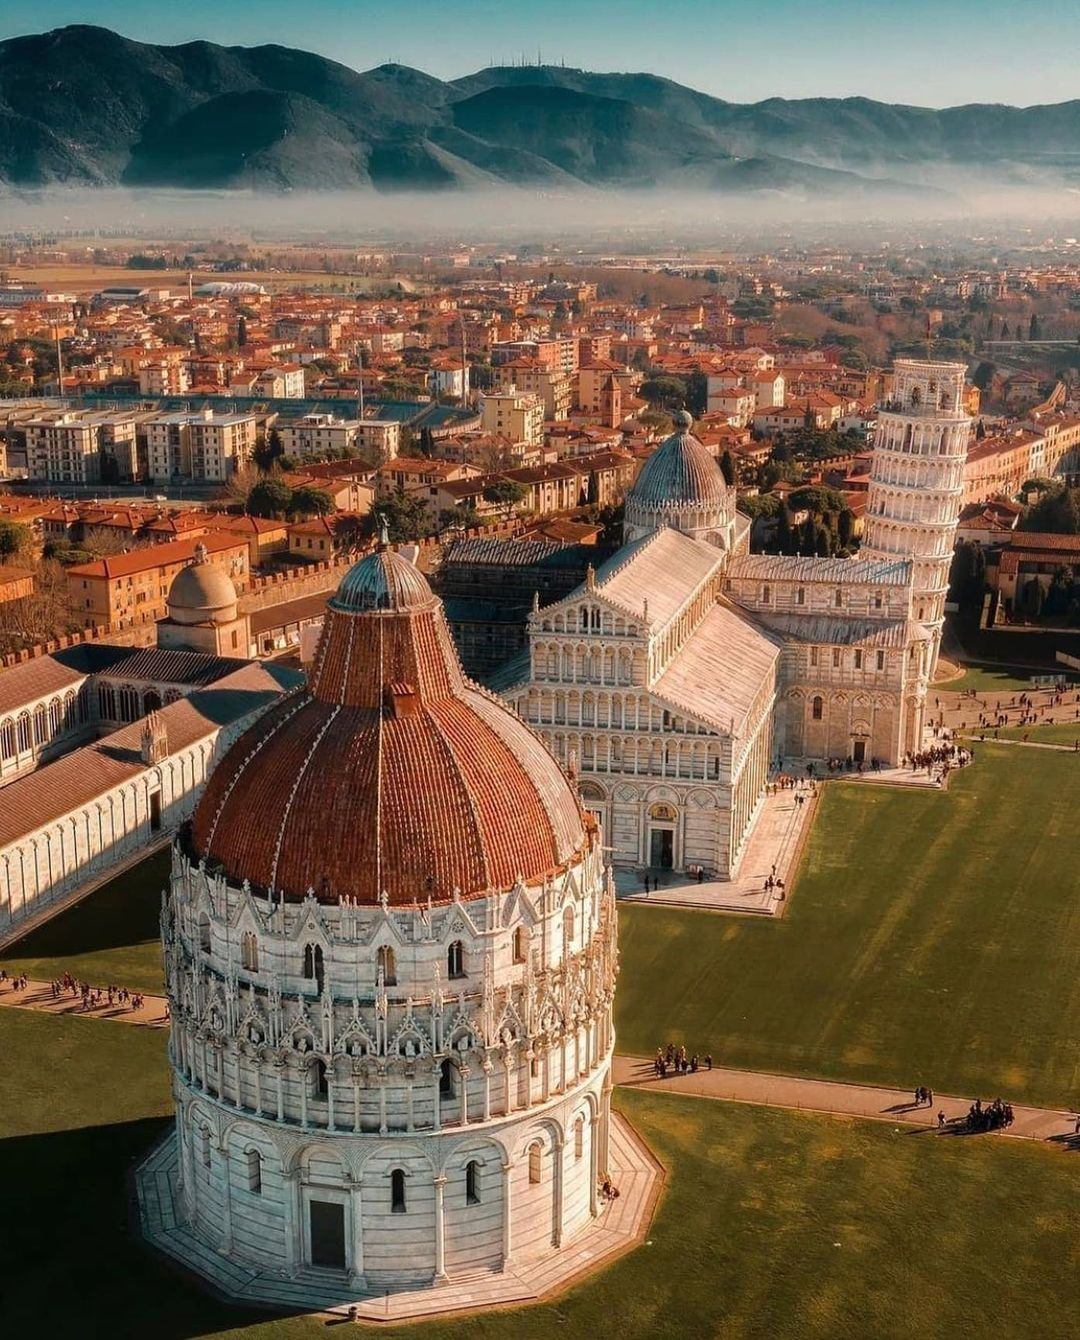 Pisa view from above